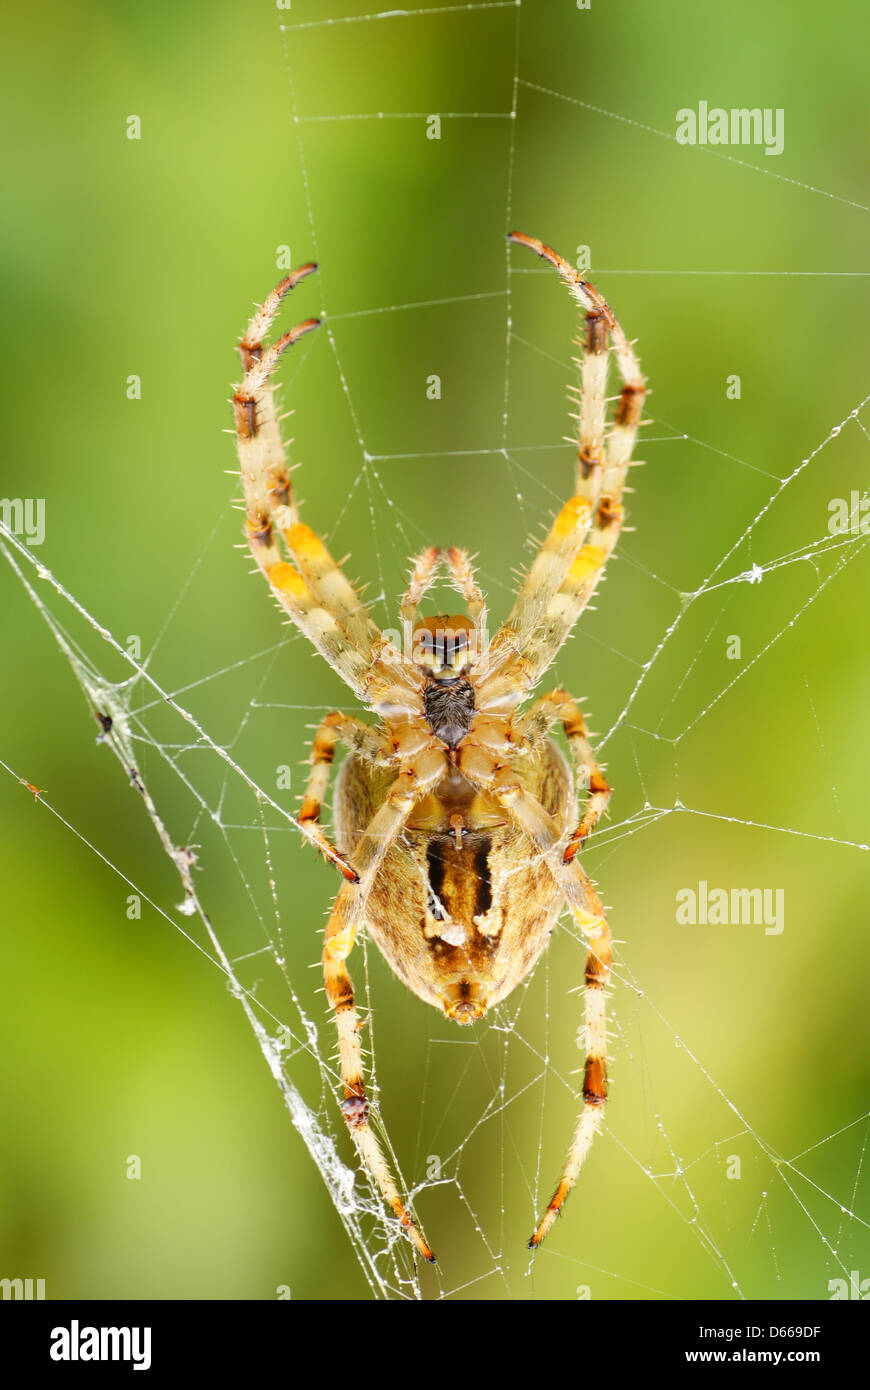 big frightening spider on cobweb in forest - Stock Image